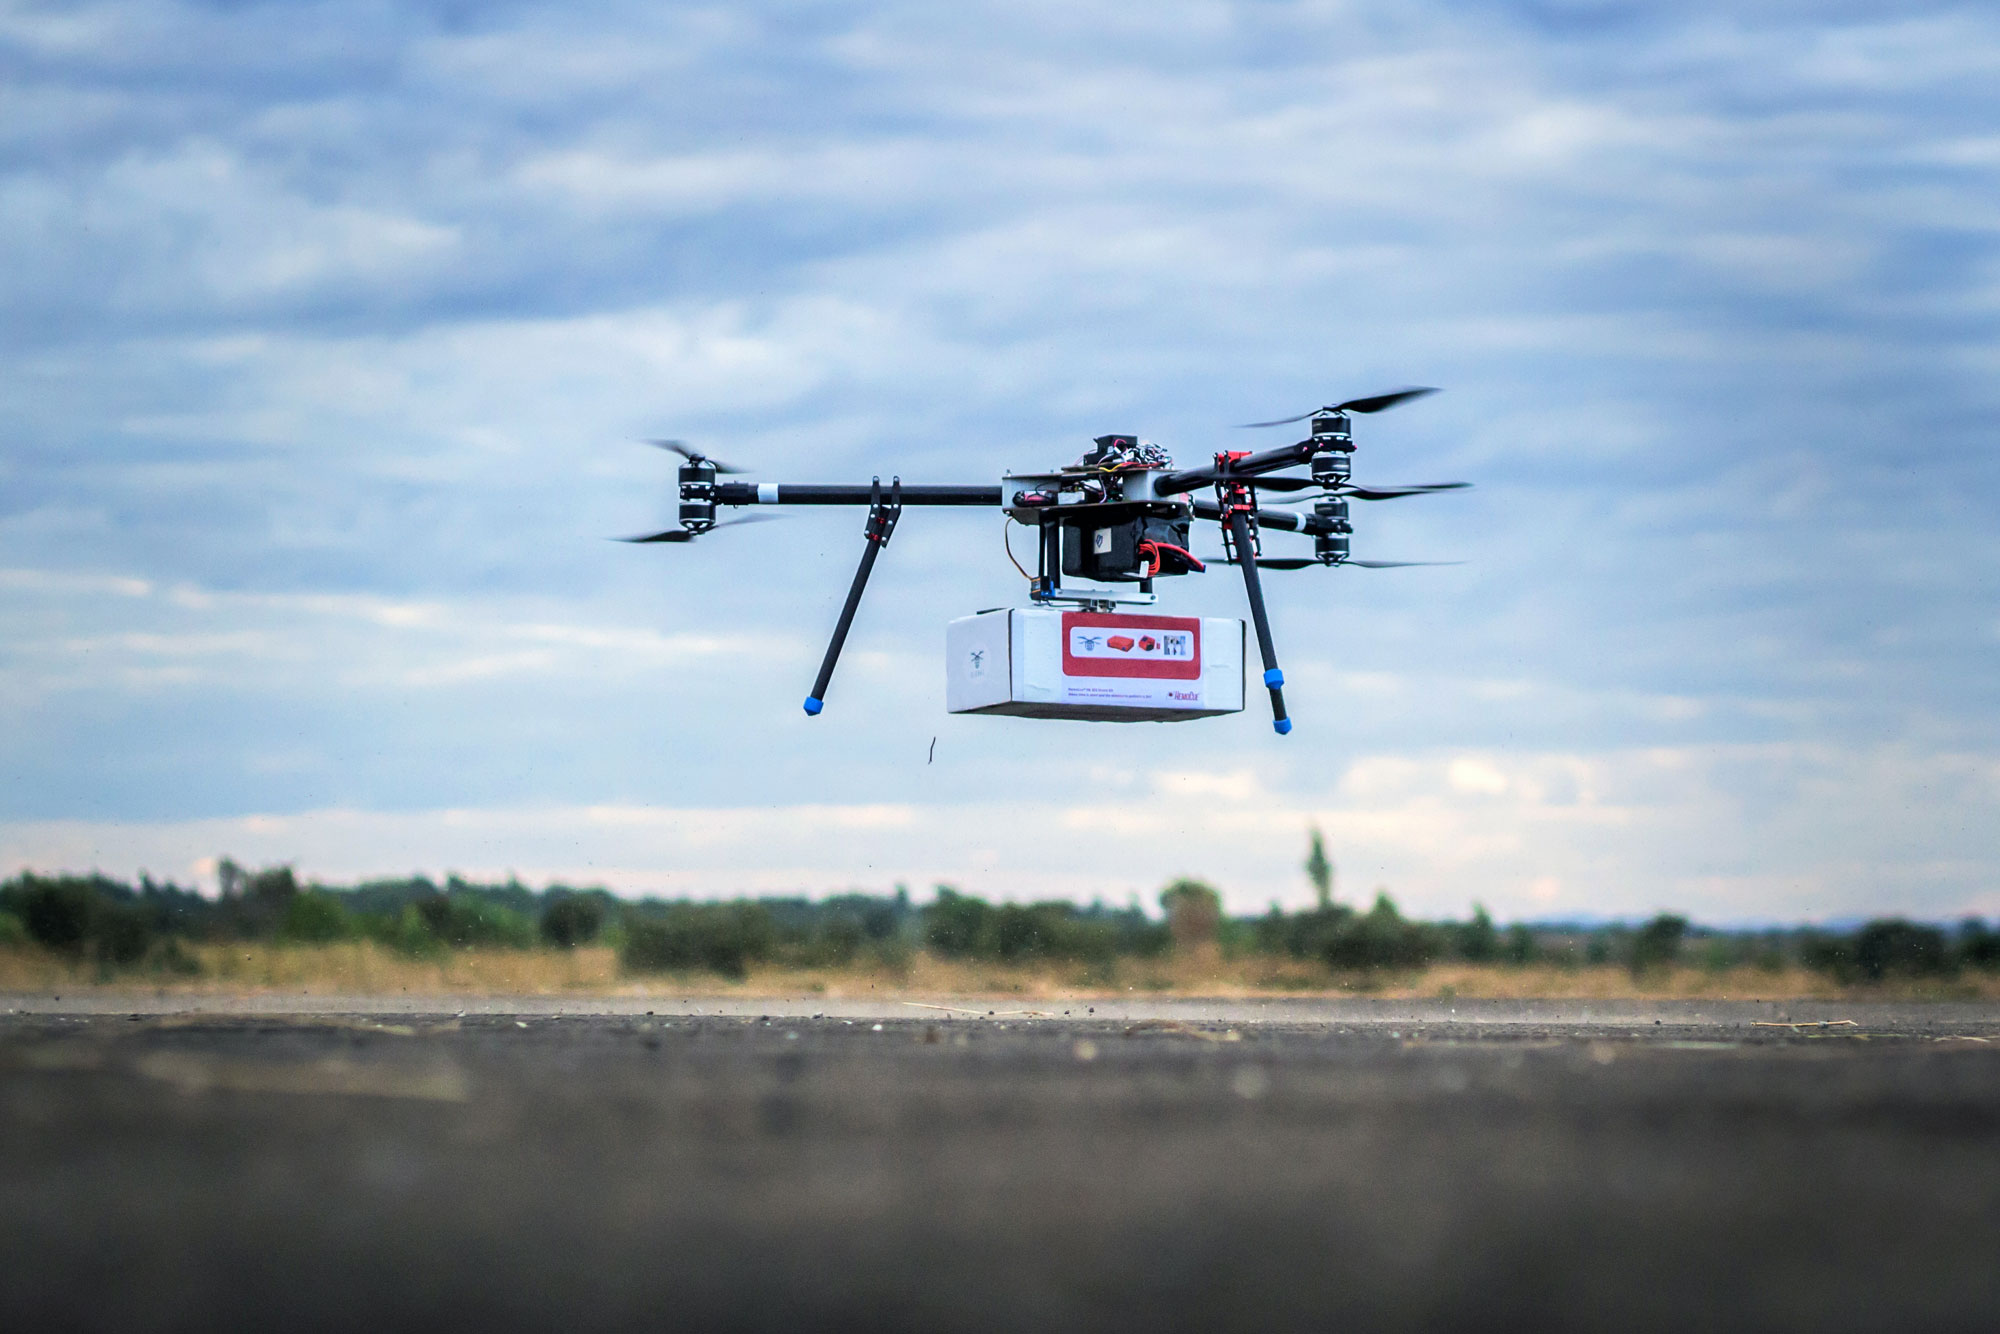 Drones for Humanitarian Work